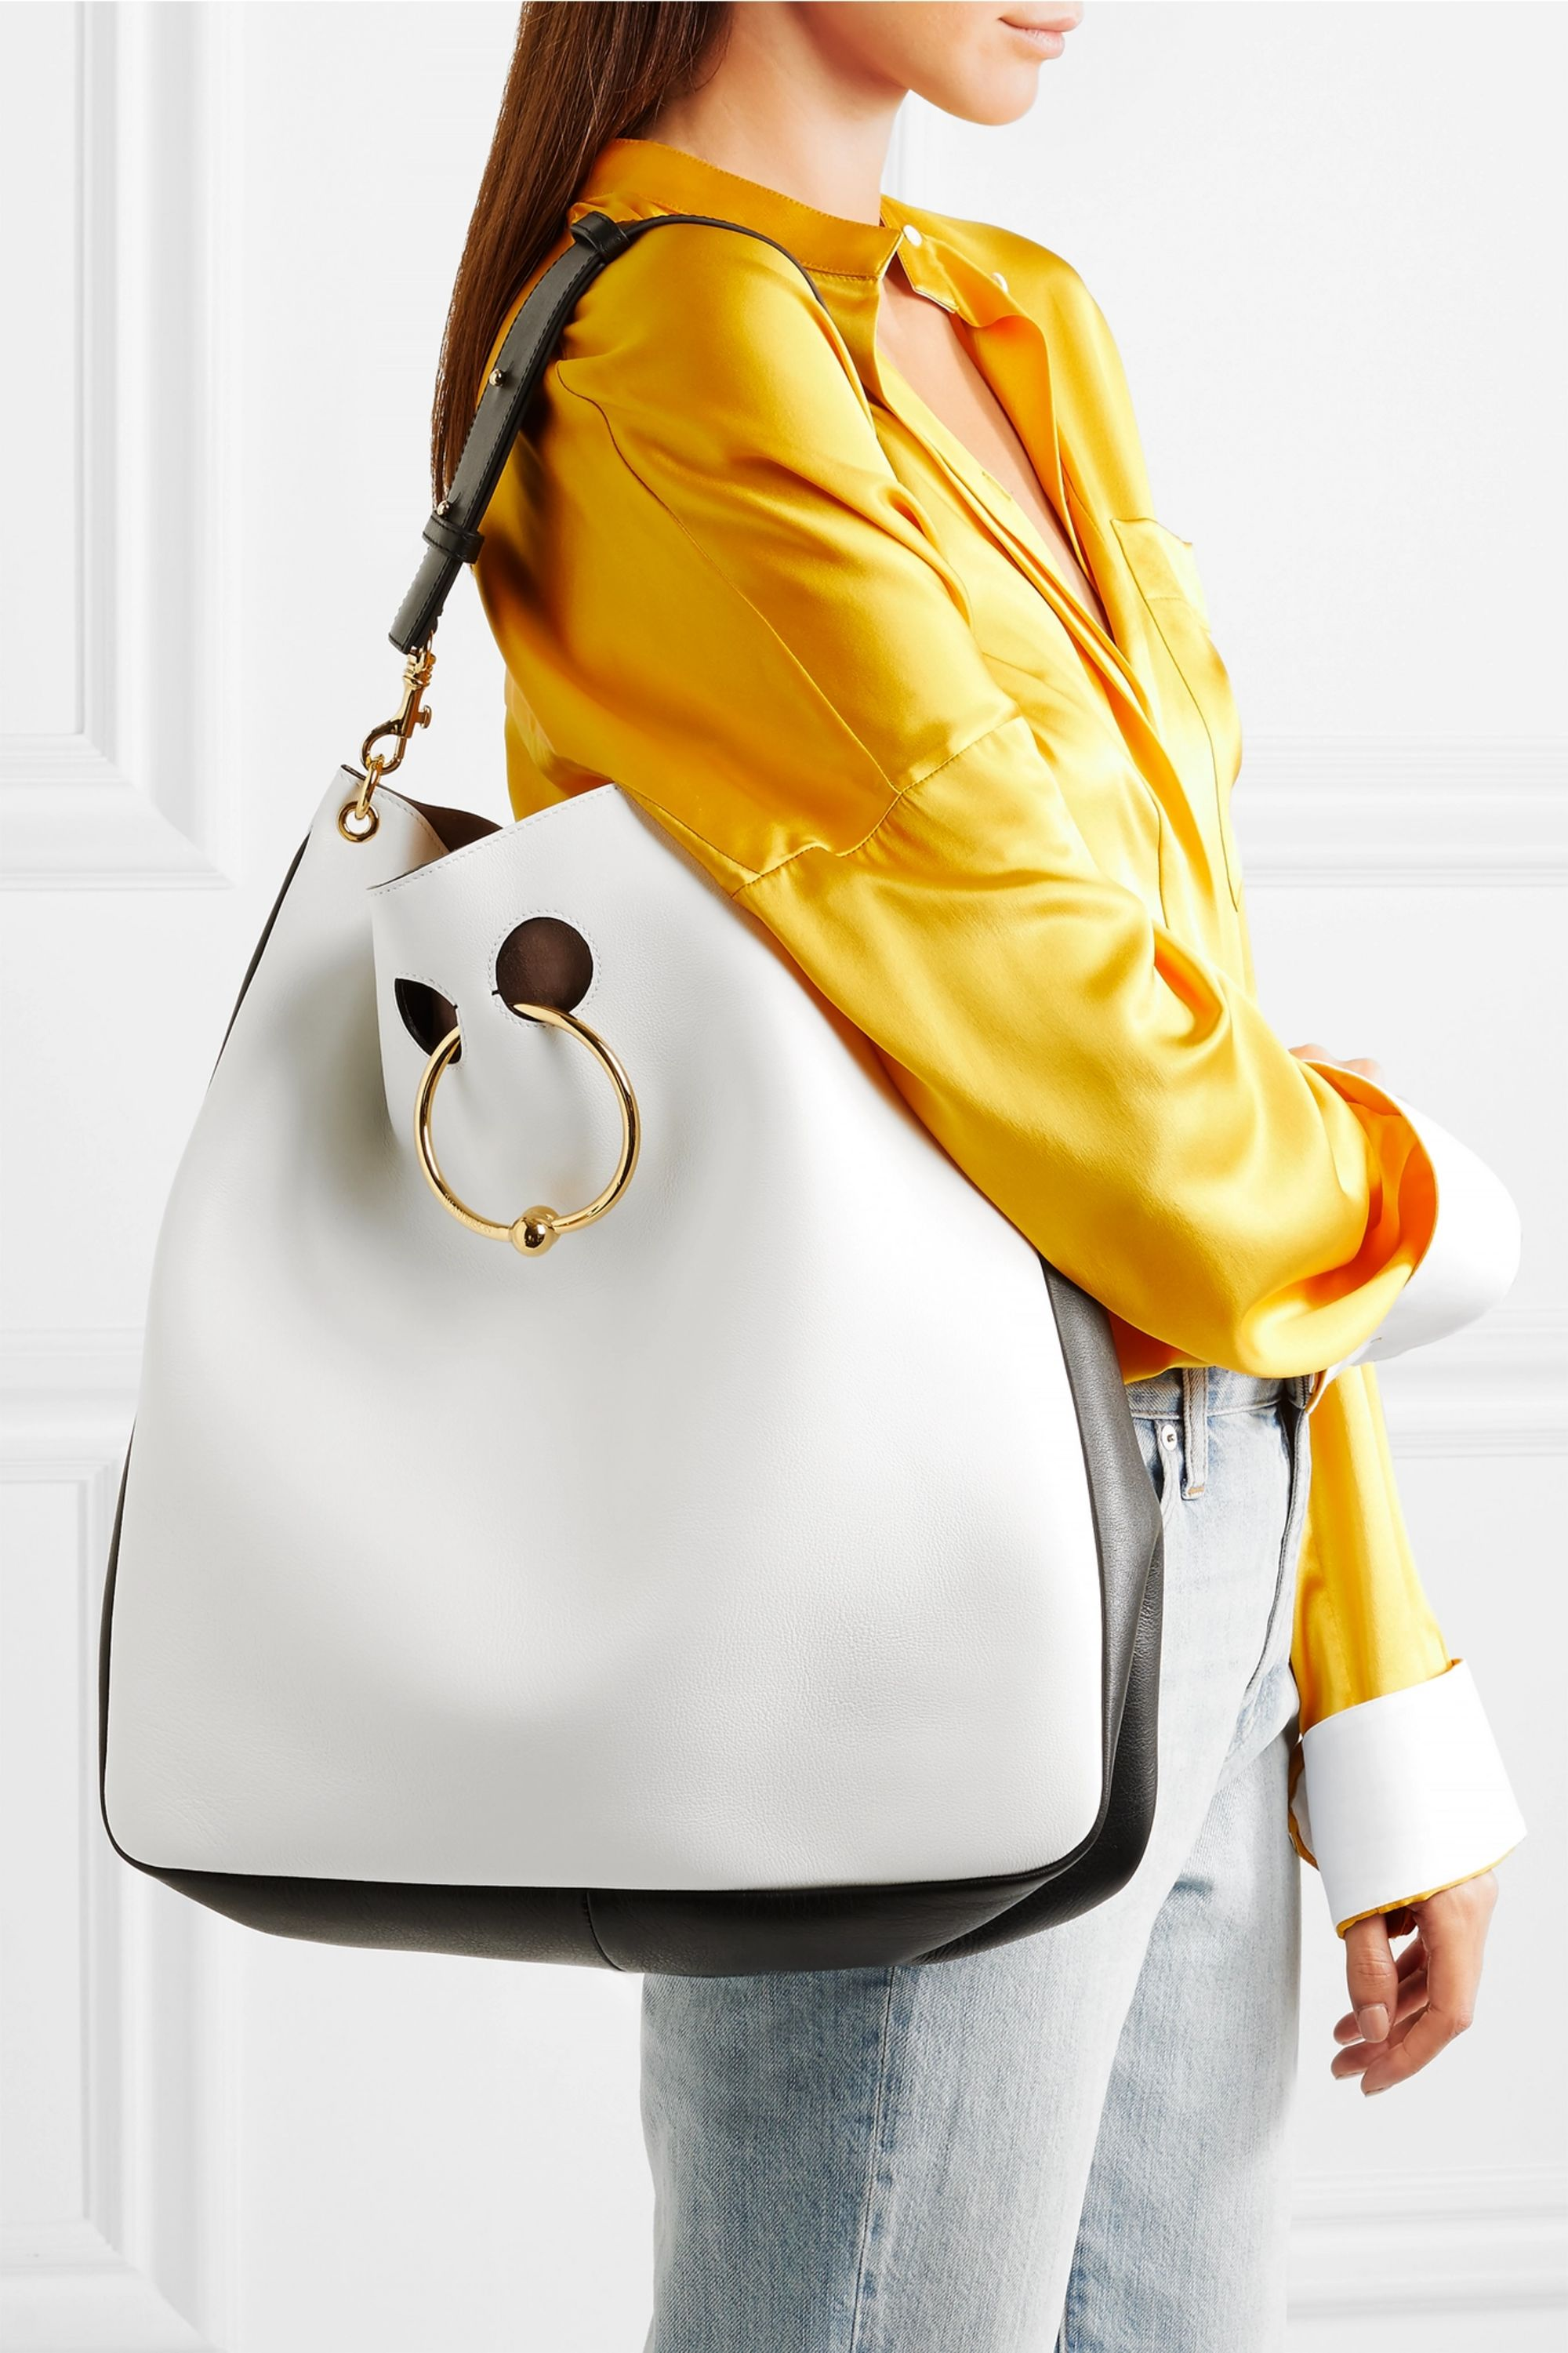 JW Anderson Pierce Hobo two-tone leather tote